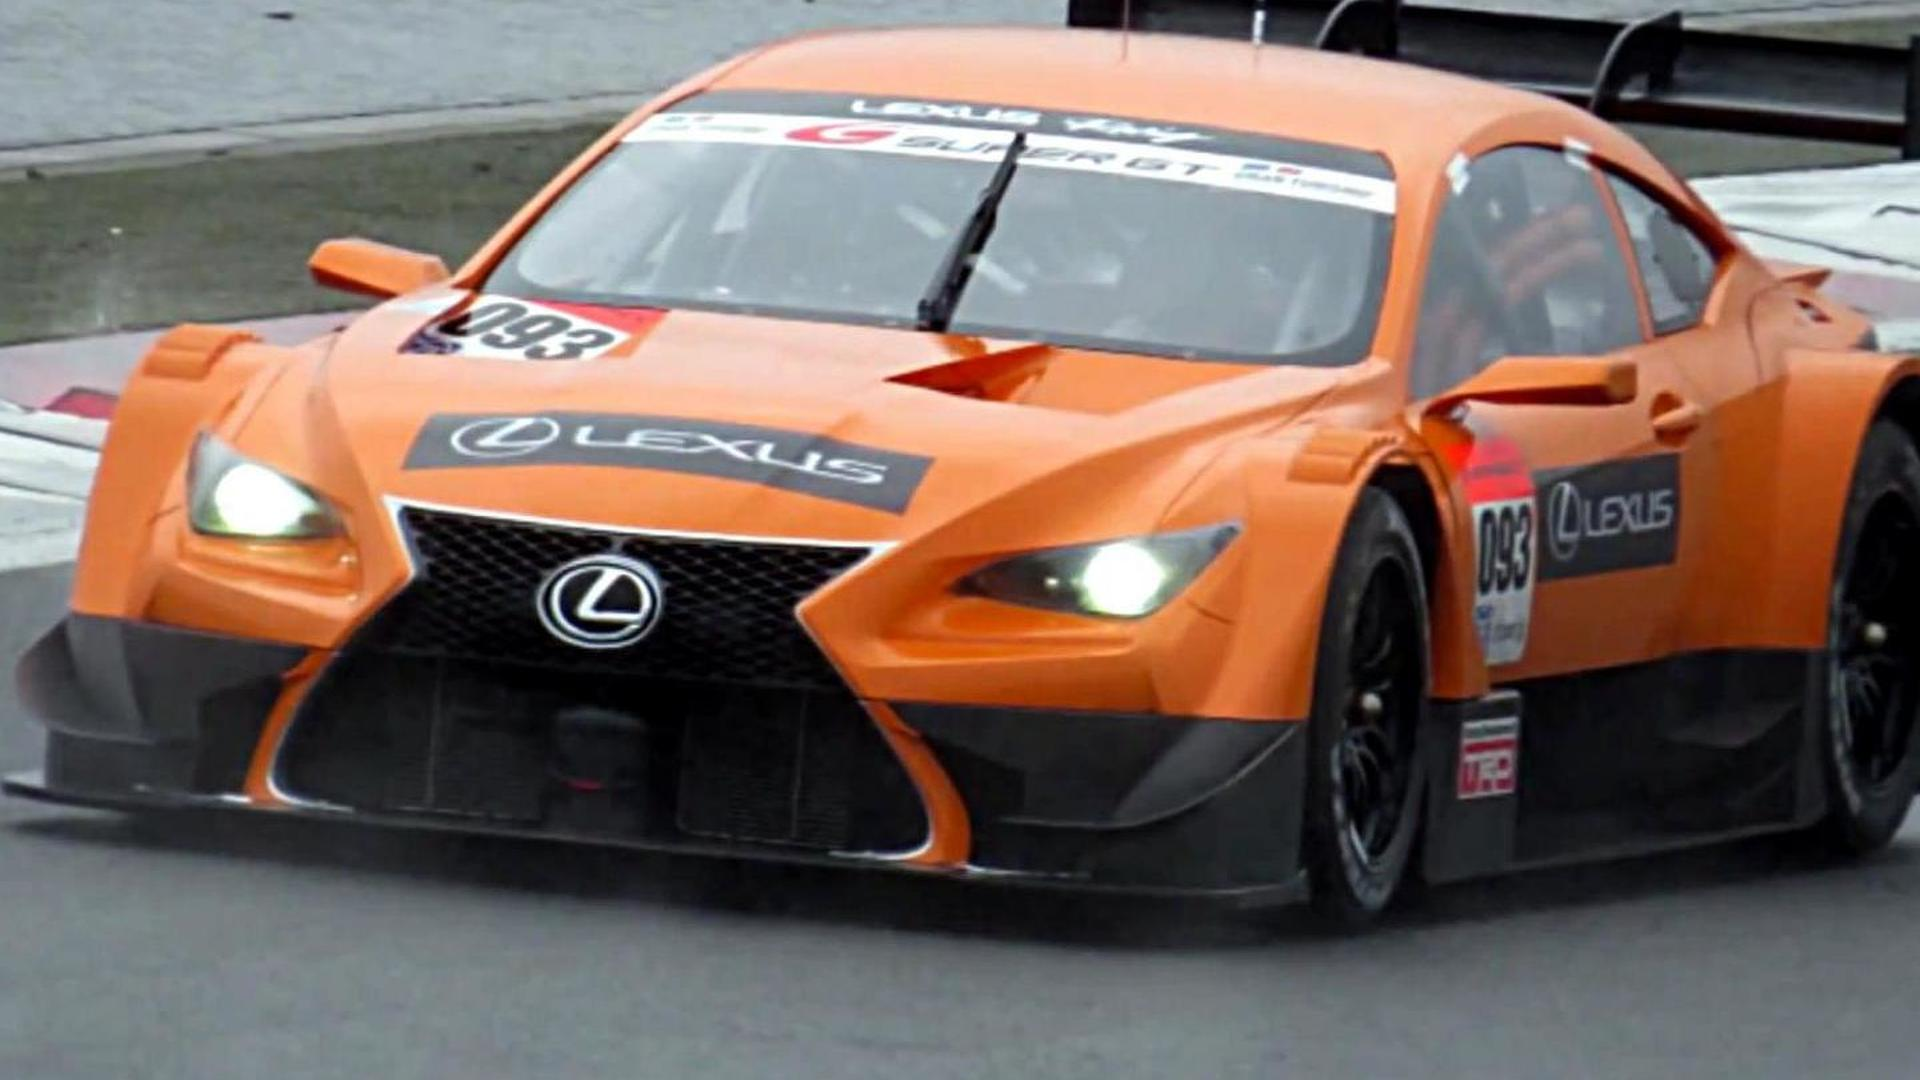 https://icdn-4.motor1.com/images/mgl/6NgmE/s1/2013-414862-lexus-lf-cc-race-car-spy-video-screenshot-30-09-20131.jpg